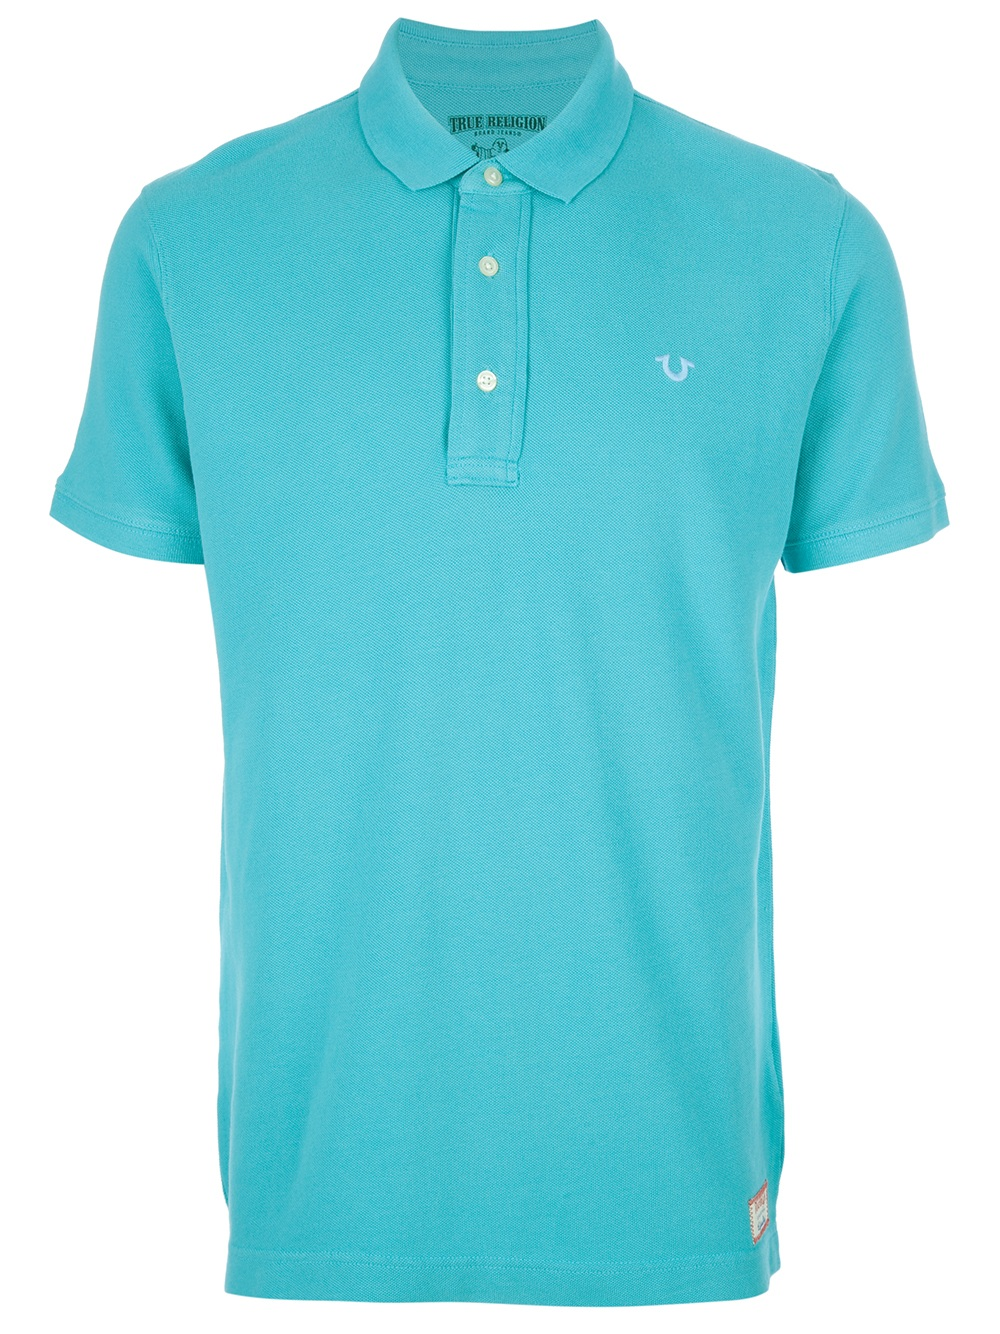 Turquoise Polo Shirts For Men